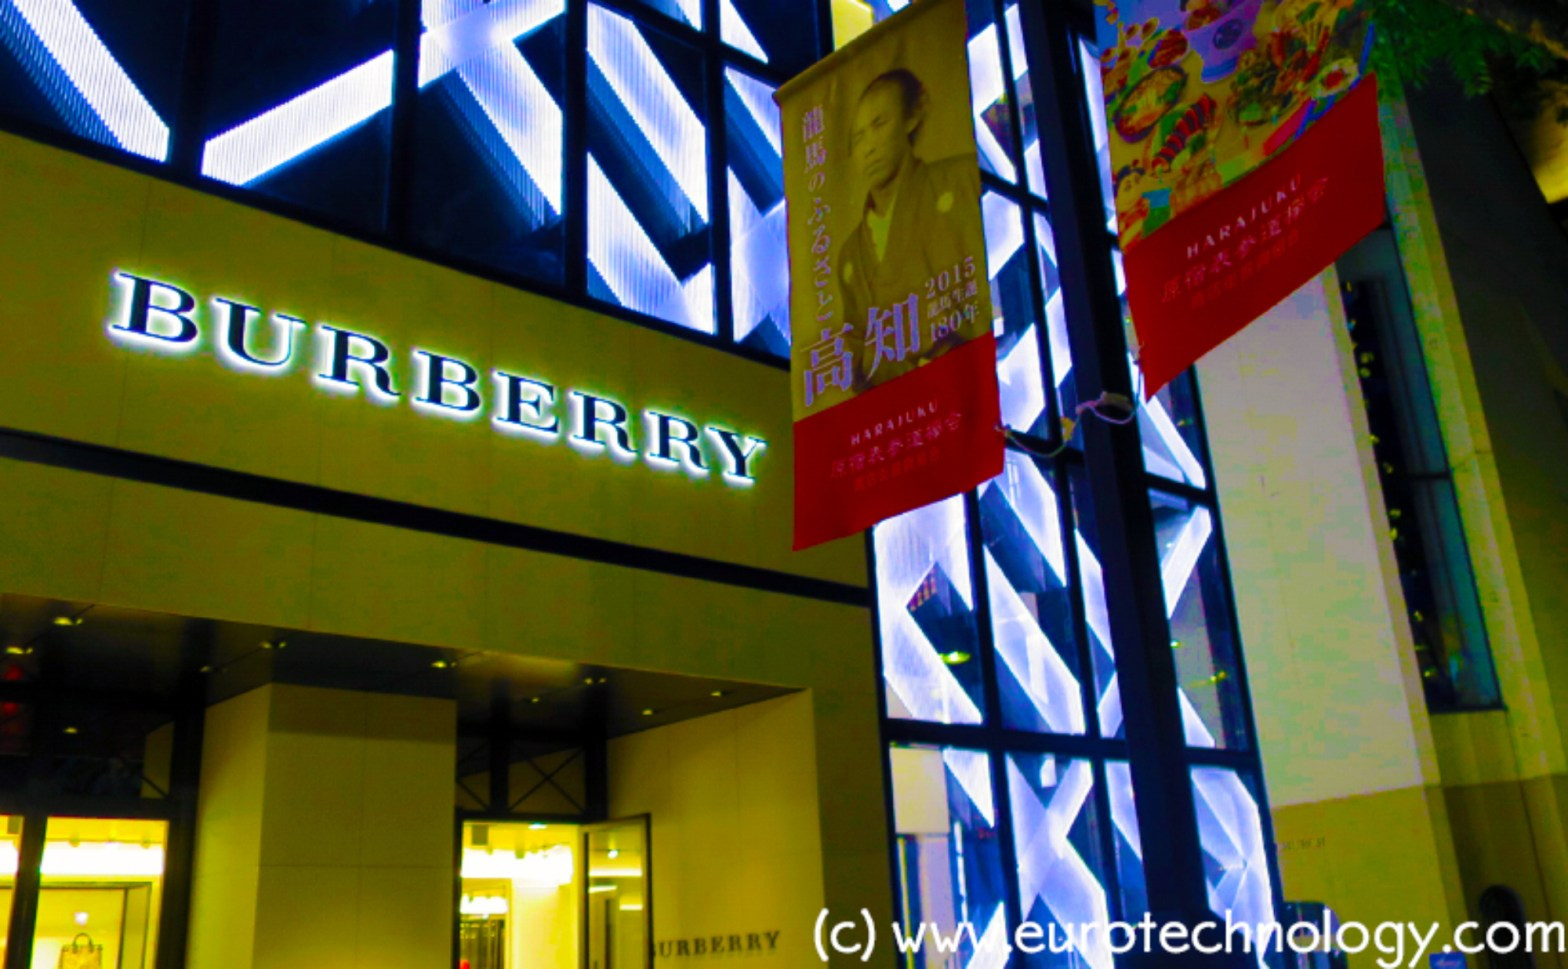 Burberry Japan moves from licensing to direct model